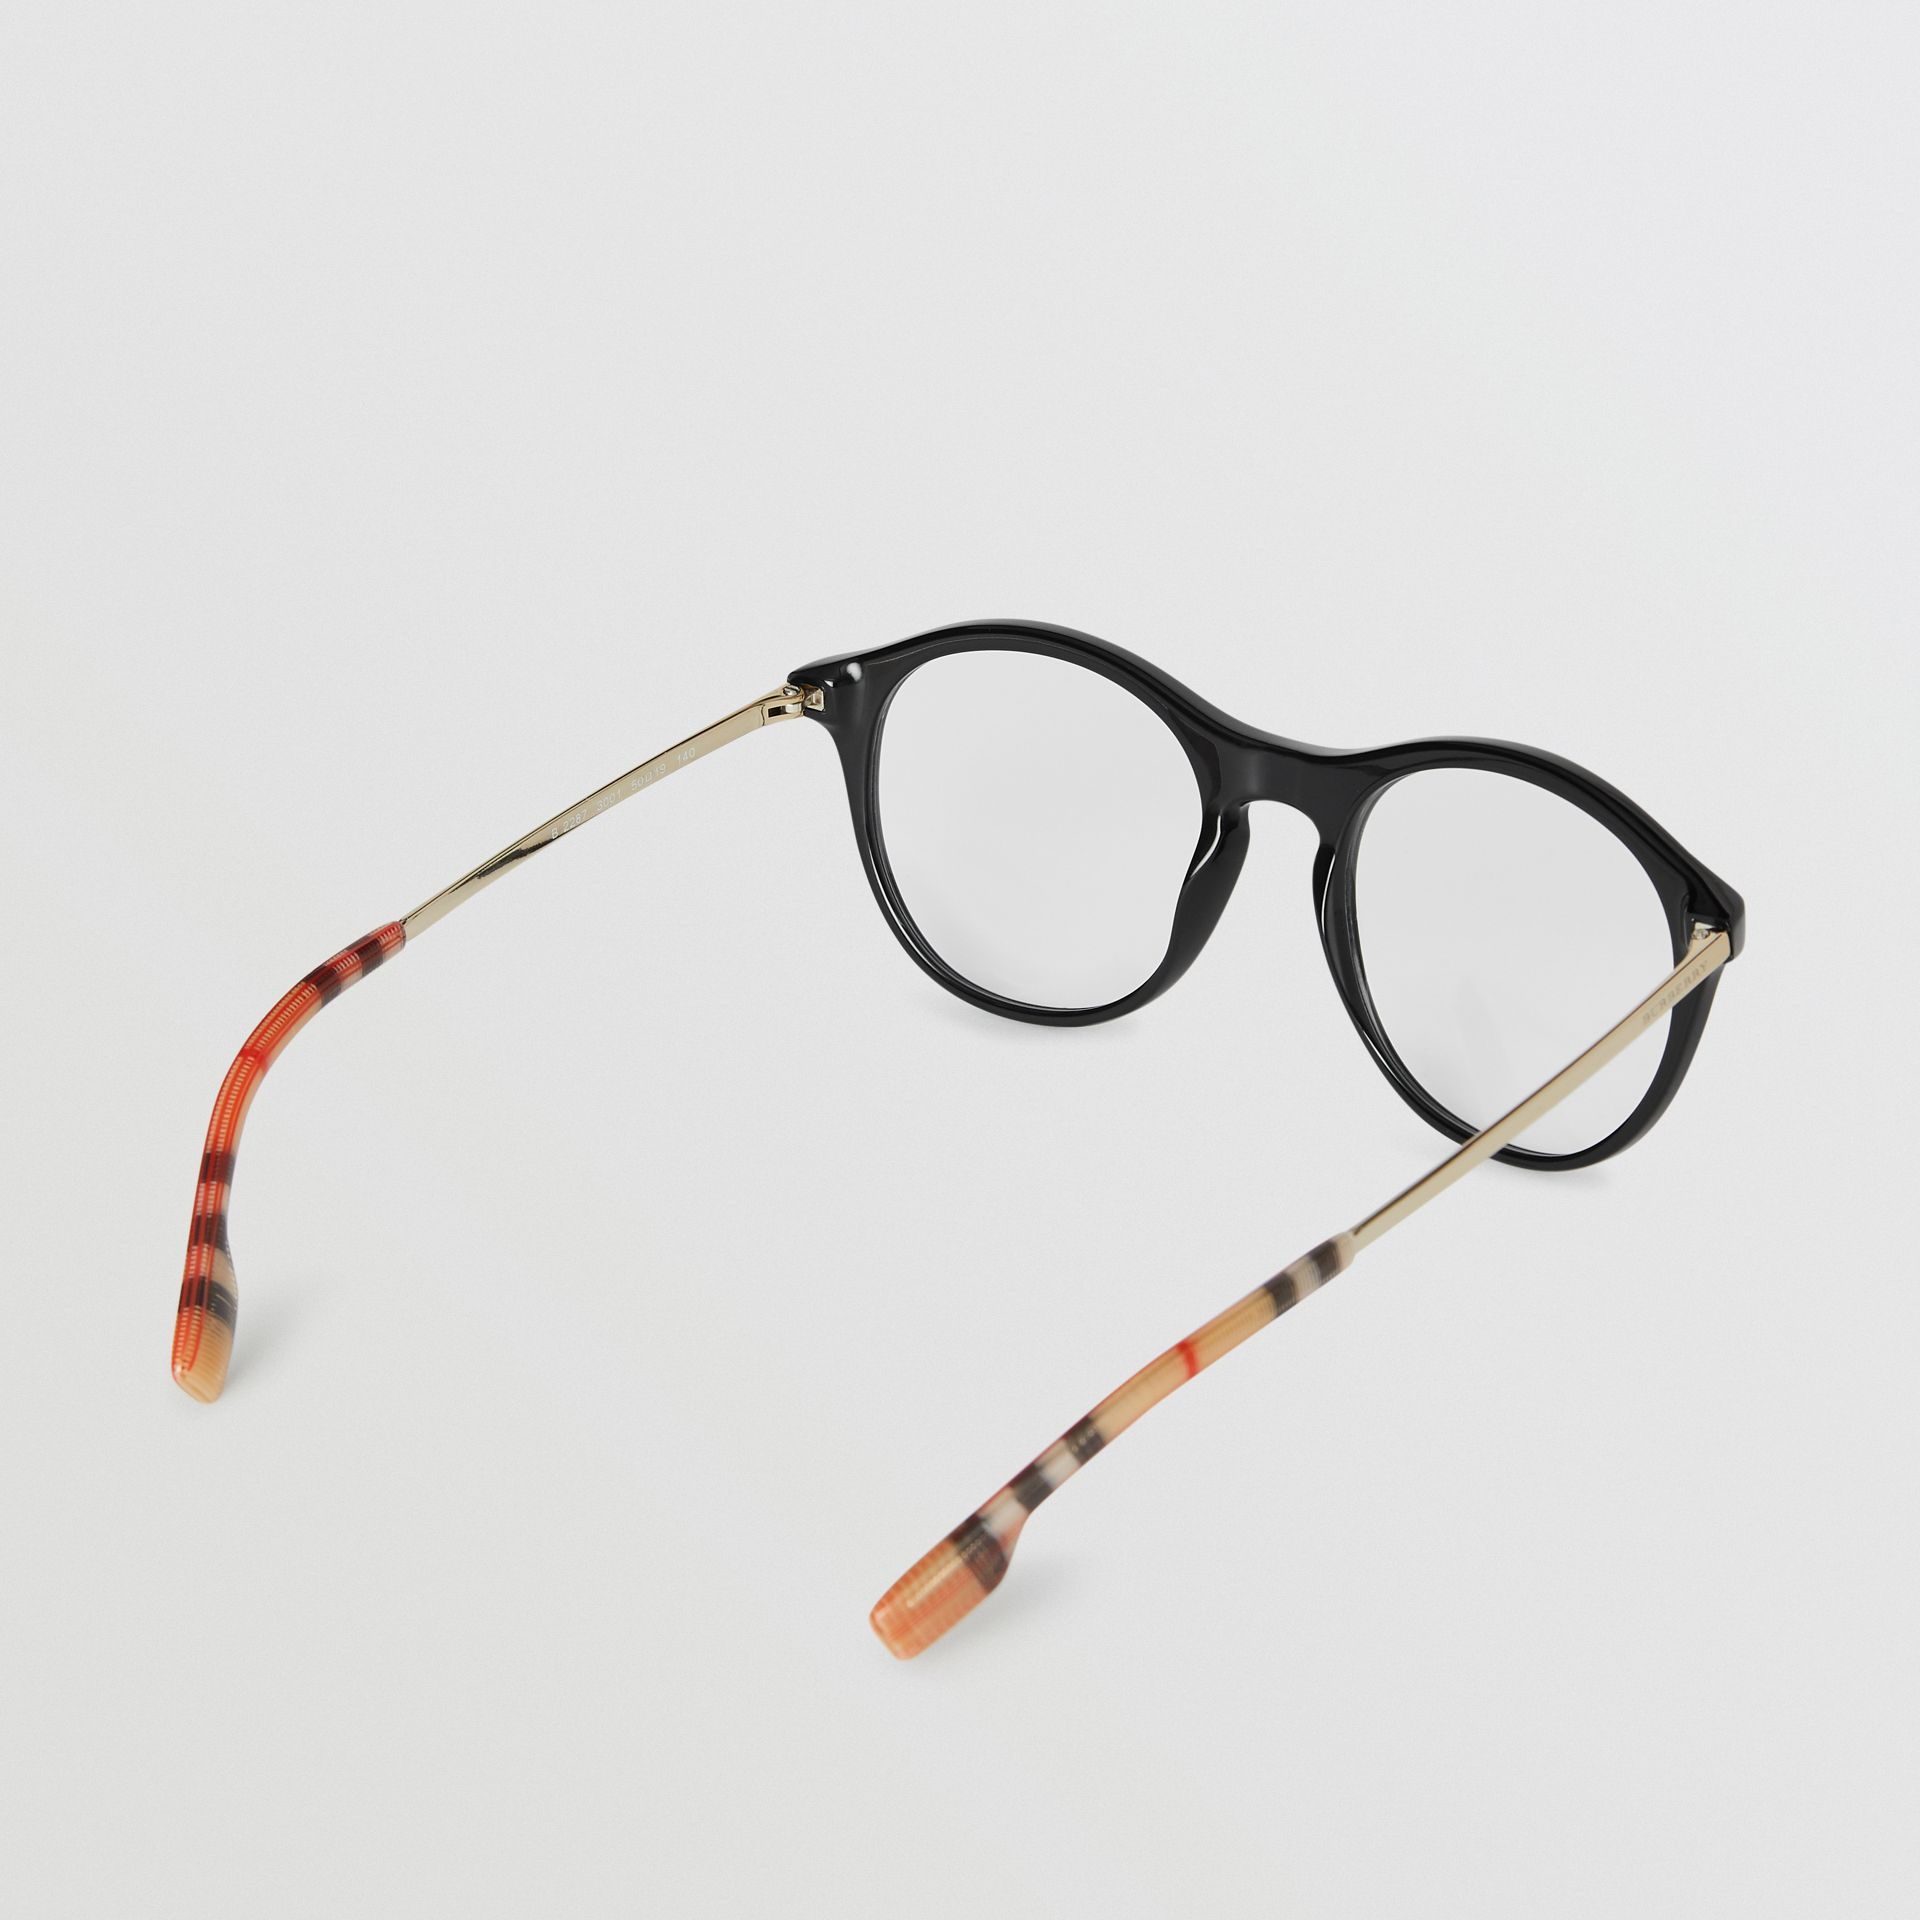 Vintage Check Detail Round Optical Frames in Black - Women | Burberry Australia - gallery image 3